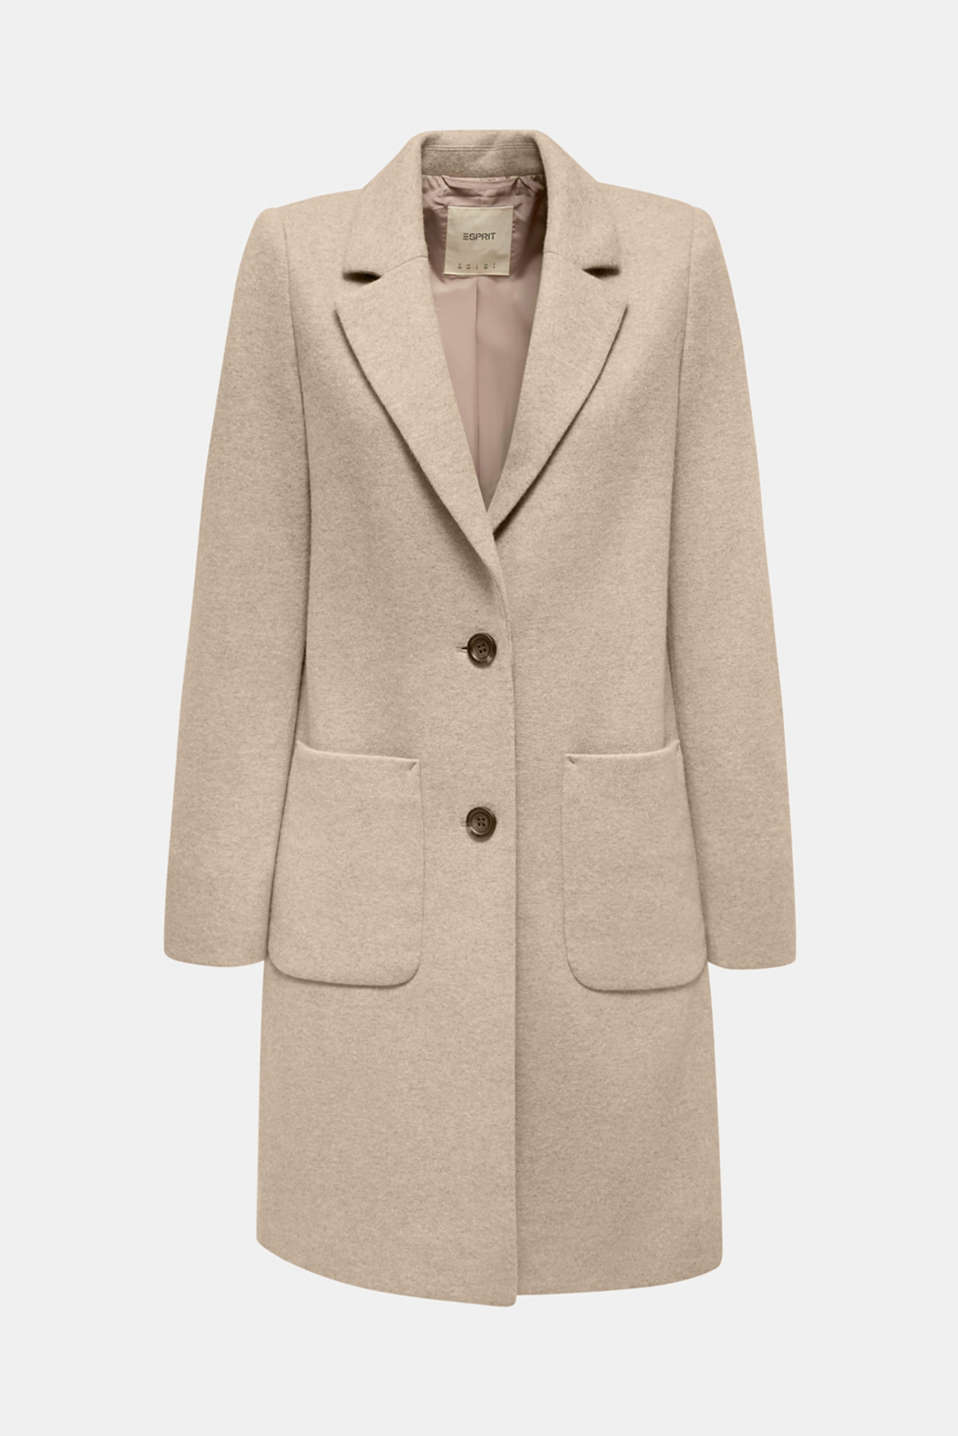 Made of blended wool: ready-to-wear knit coat